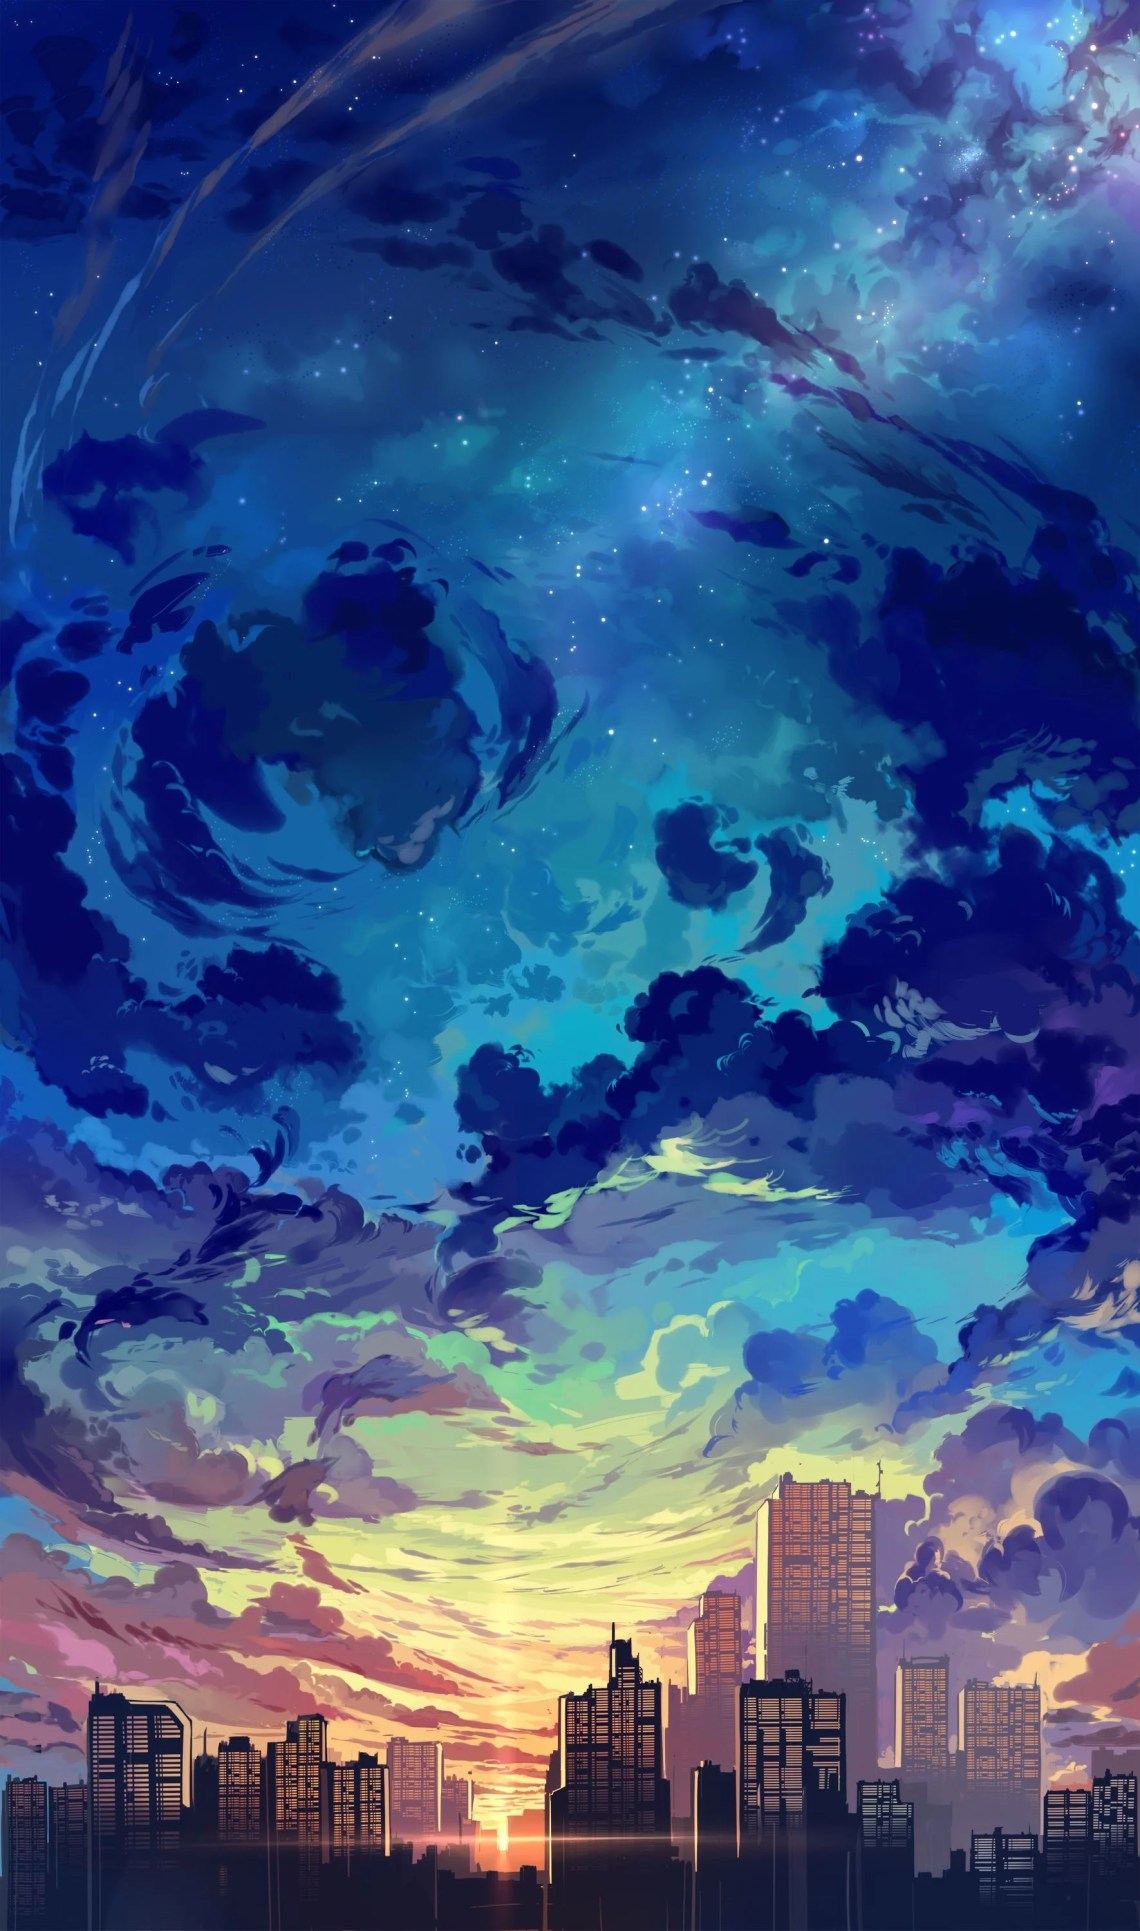 Aesthetic Anime Phone Wallpapers Top Free Aesthetic Anime Phone Backgrounds Wallpaperaccess